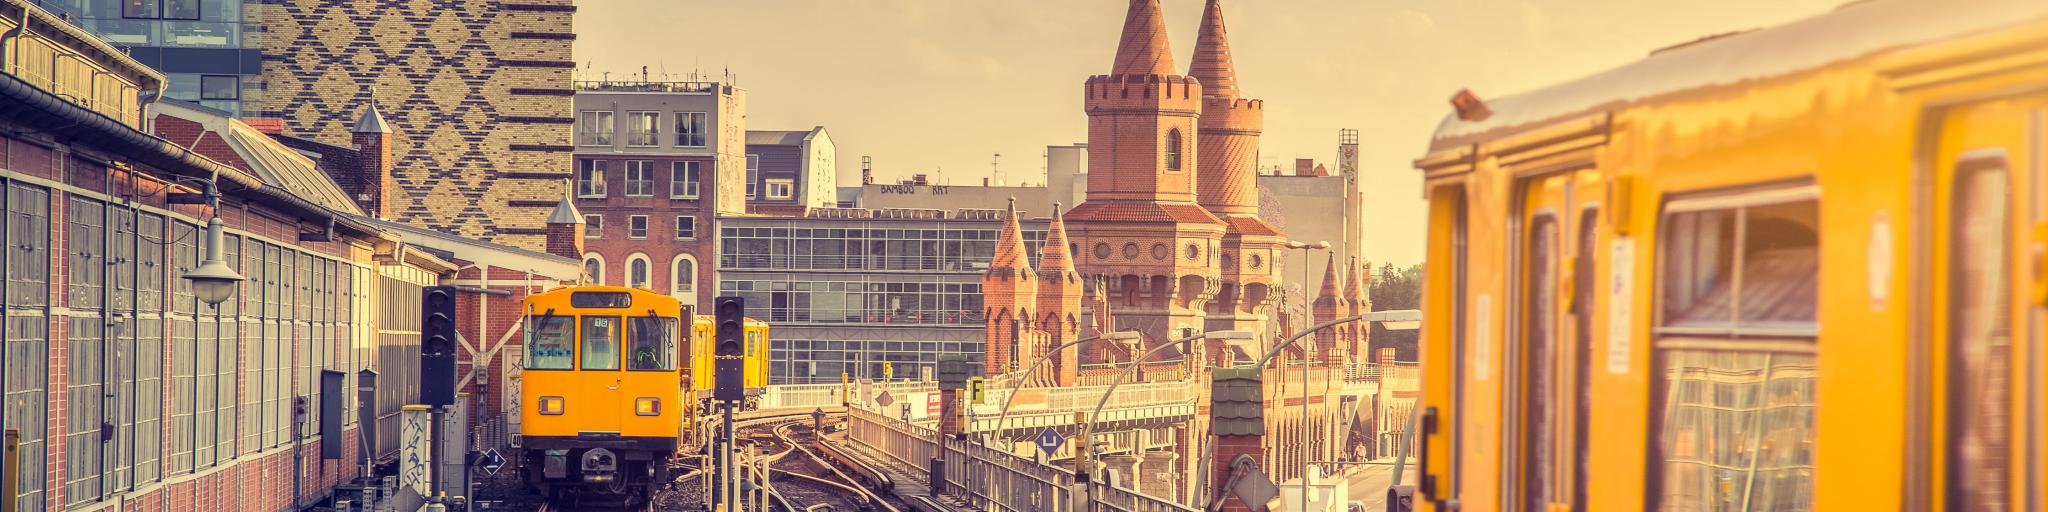 Panoramic view of yellow Berliner U-Bahn with Oberbaum Bridge, Berlin, in the background in golden evening light